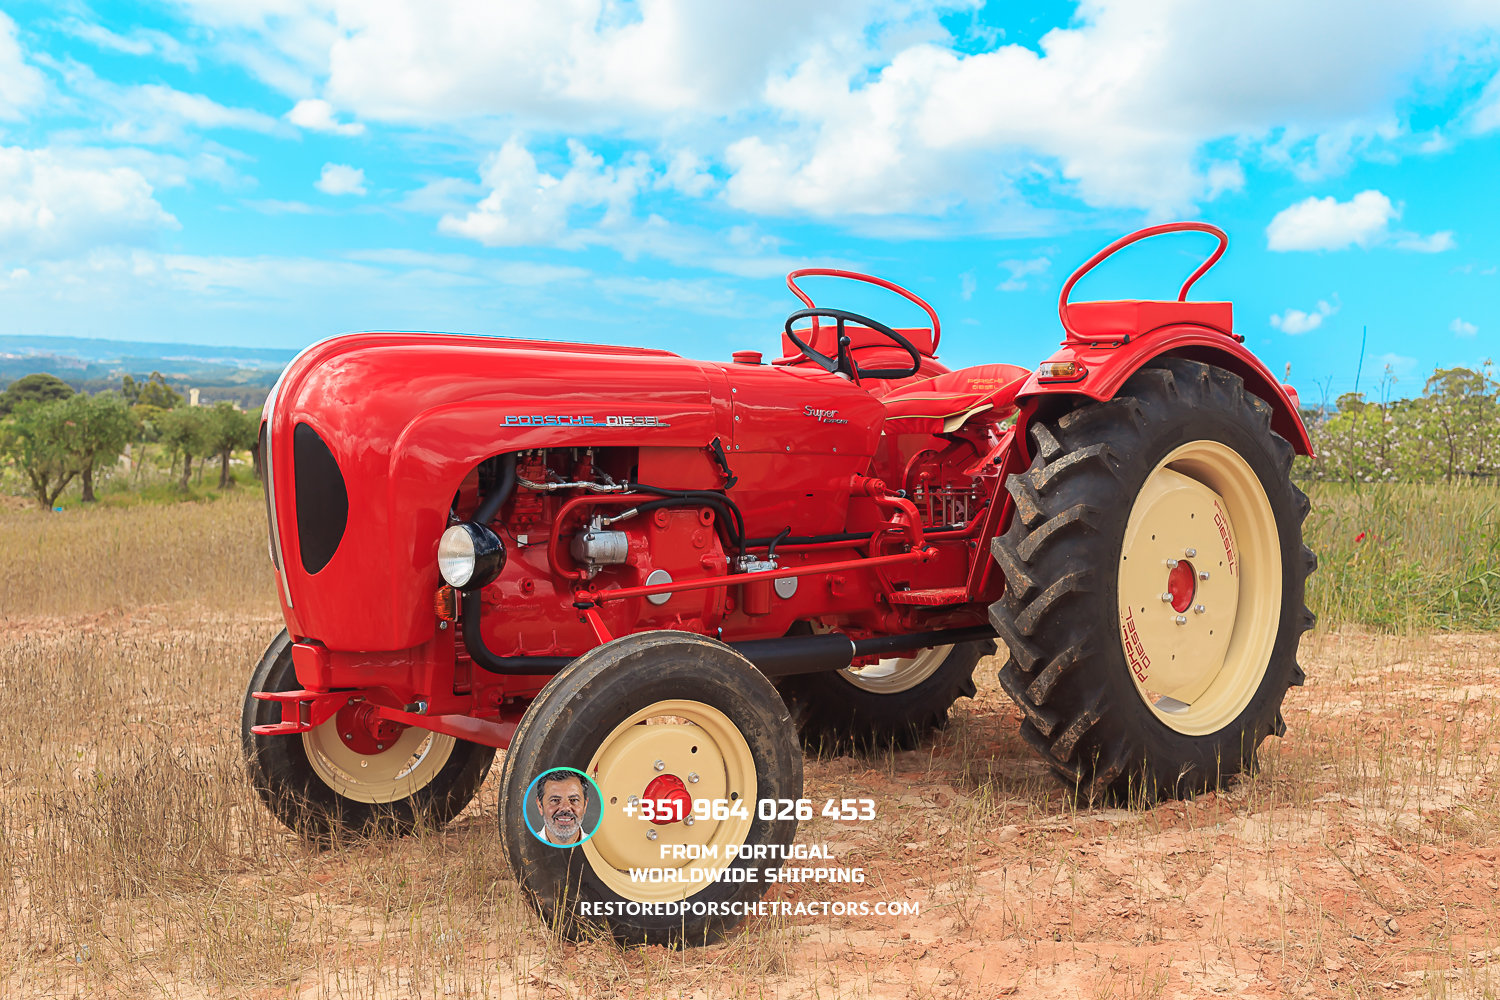 1961 Porsche Diesel Tractor For Sale (picture 1 of 6)